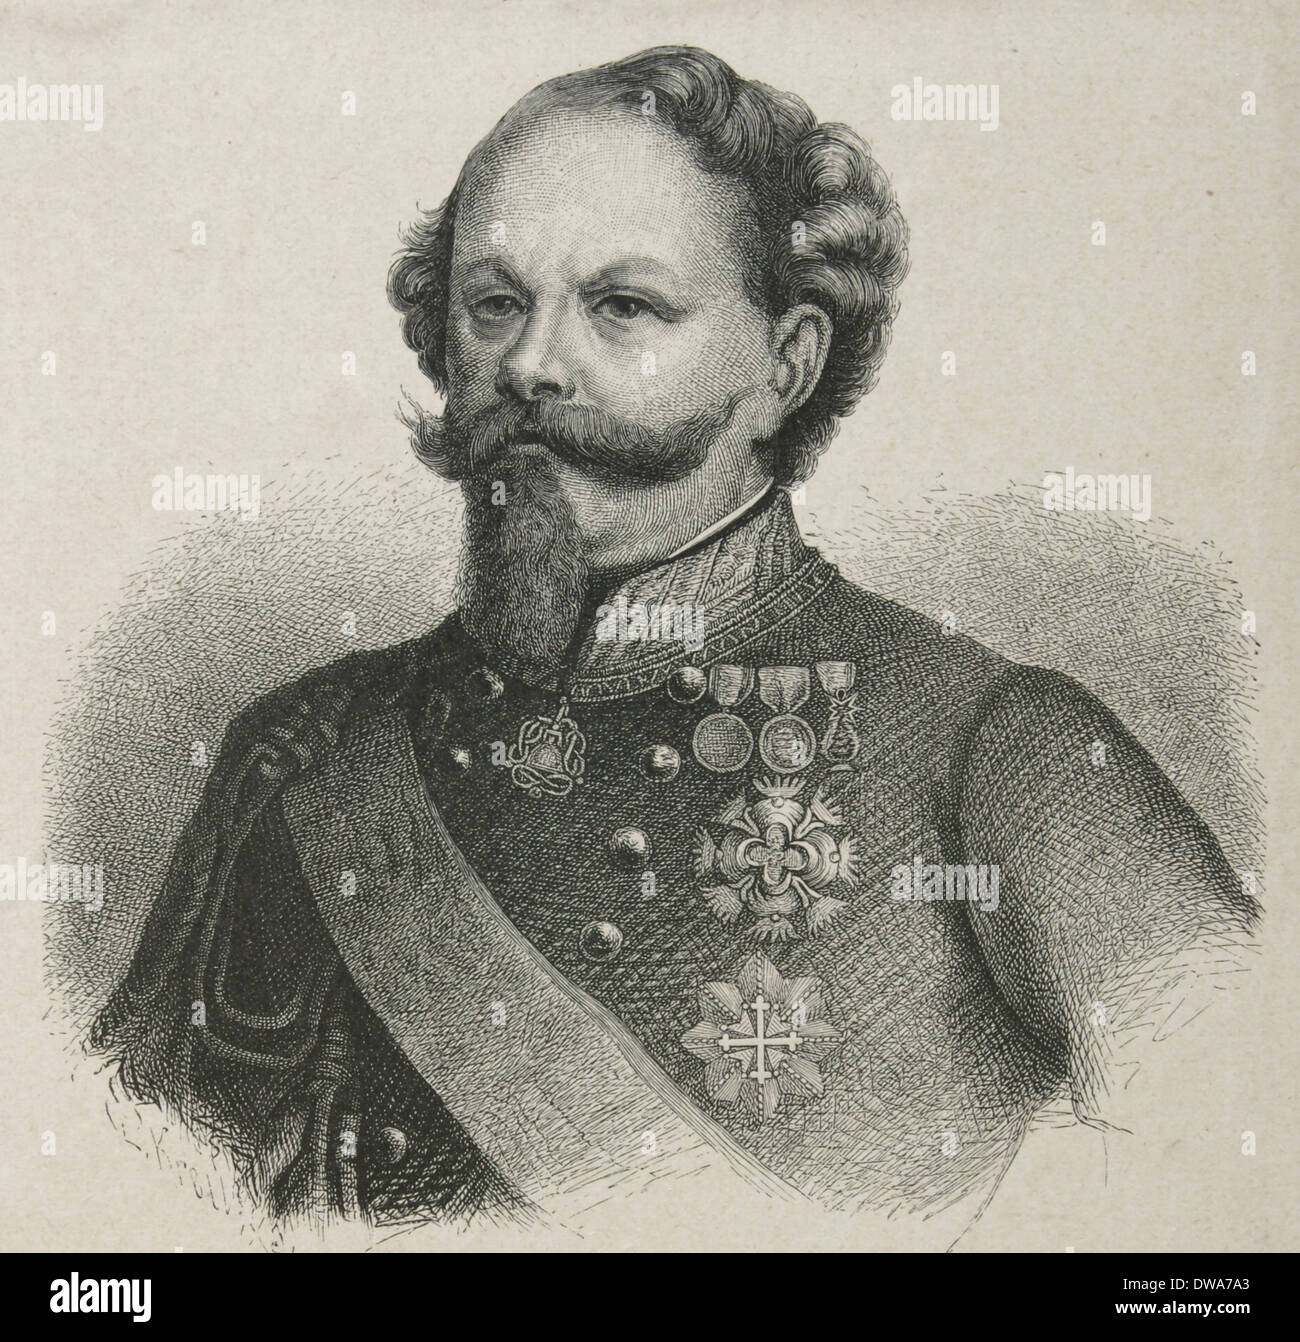 victor emmanuel ii king of sardinia history essay Paper both movements involve claims to the status of a free zone the savoisian   between napoleon iii and victor emmanuel ii, king of sardinia, of sa- voy and  piedmont, and  the claim is dis- puted by specialists of the history of savoy.